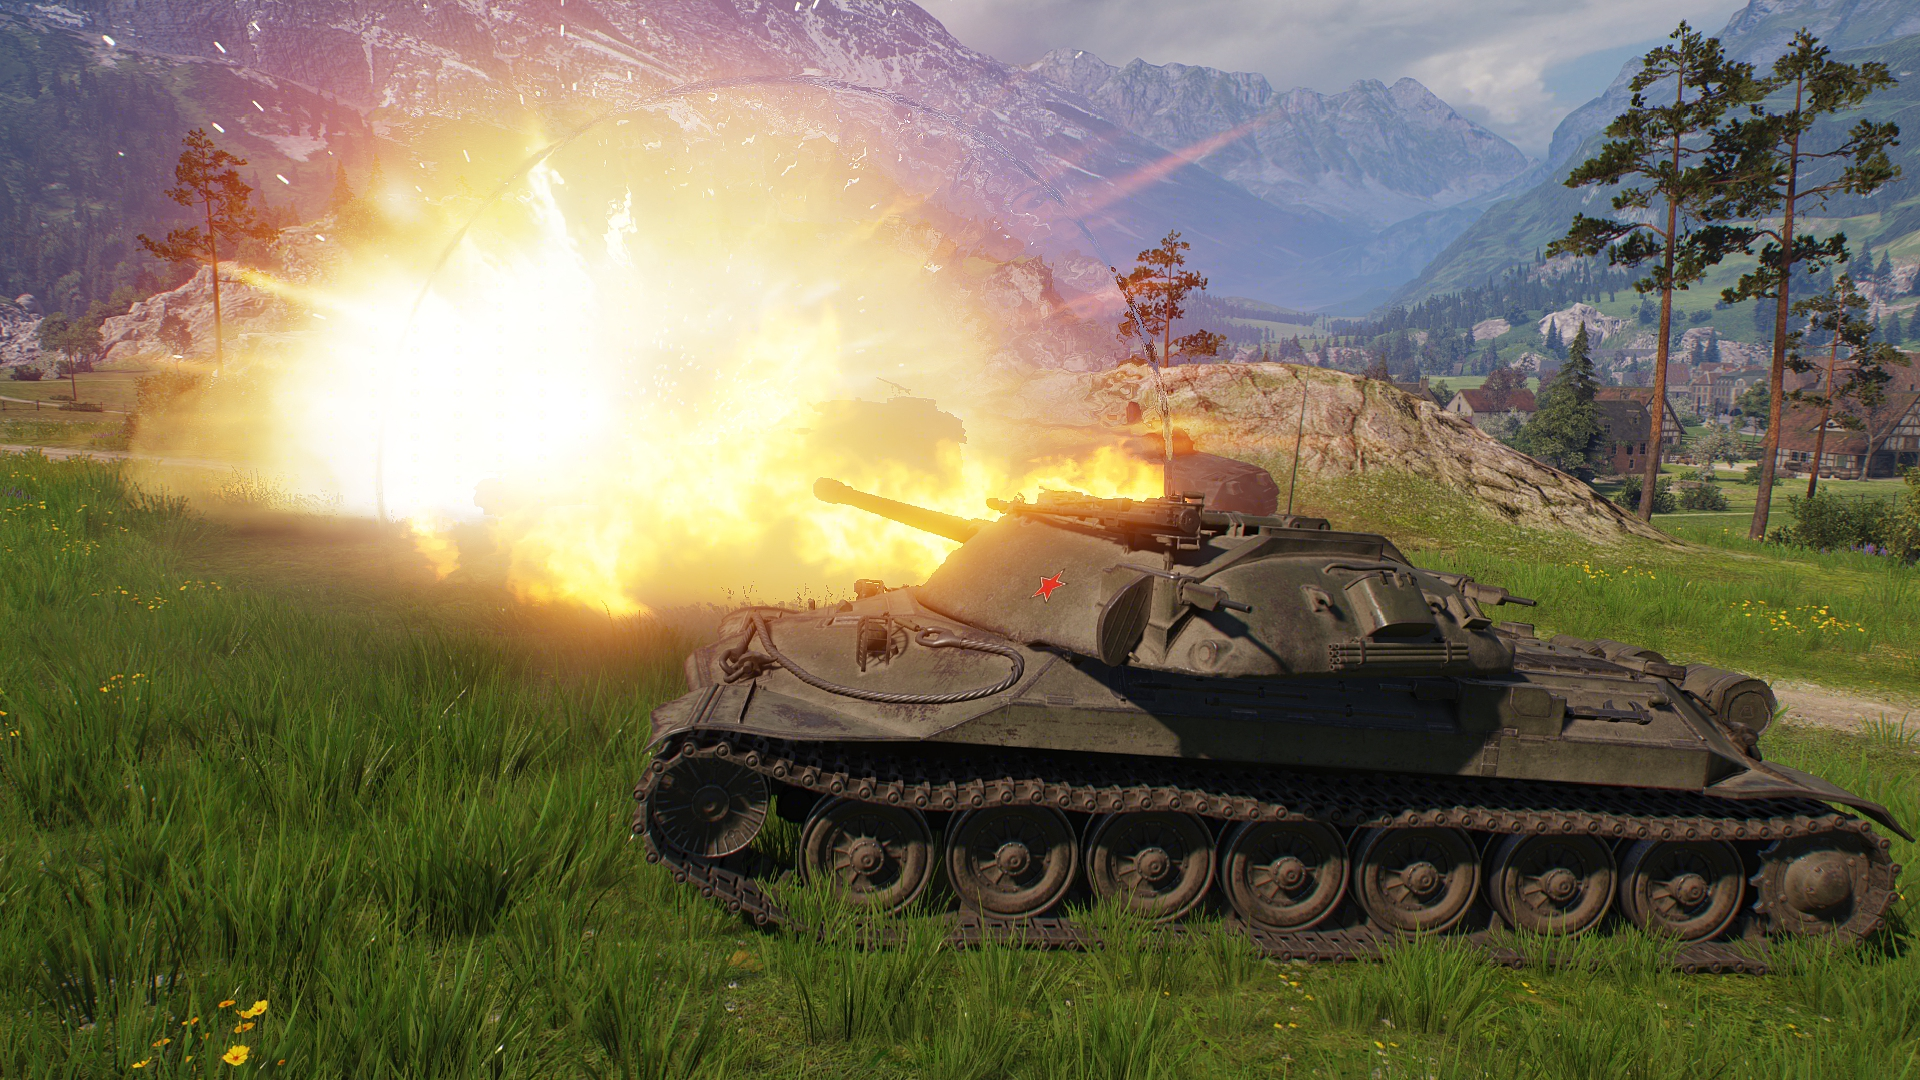 World Of Tanks To Get Major 1.0 Update